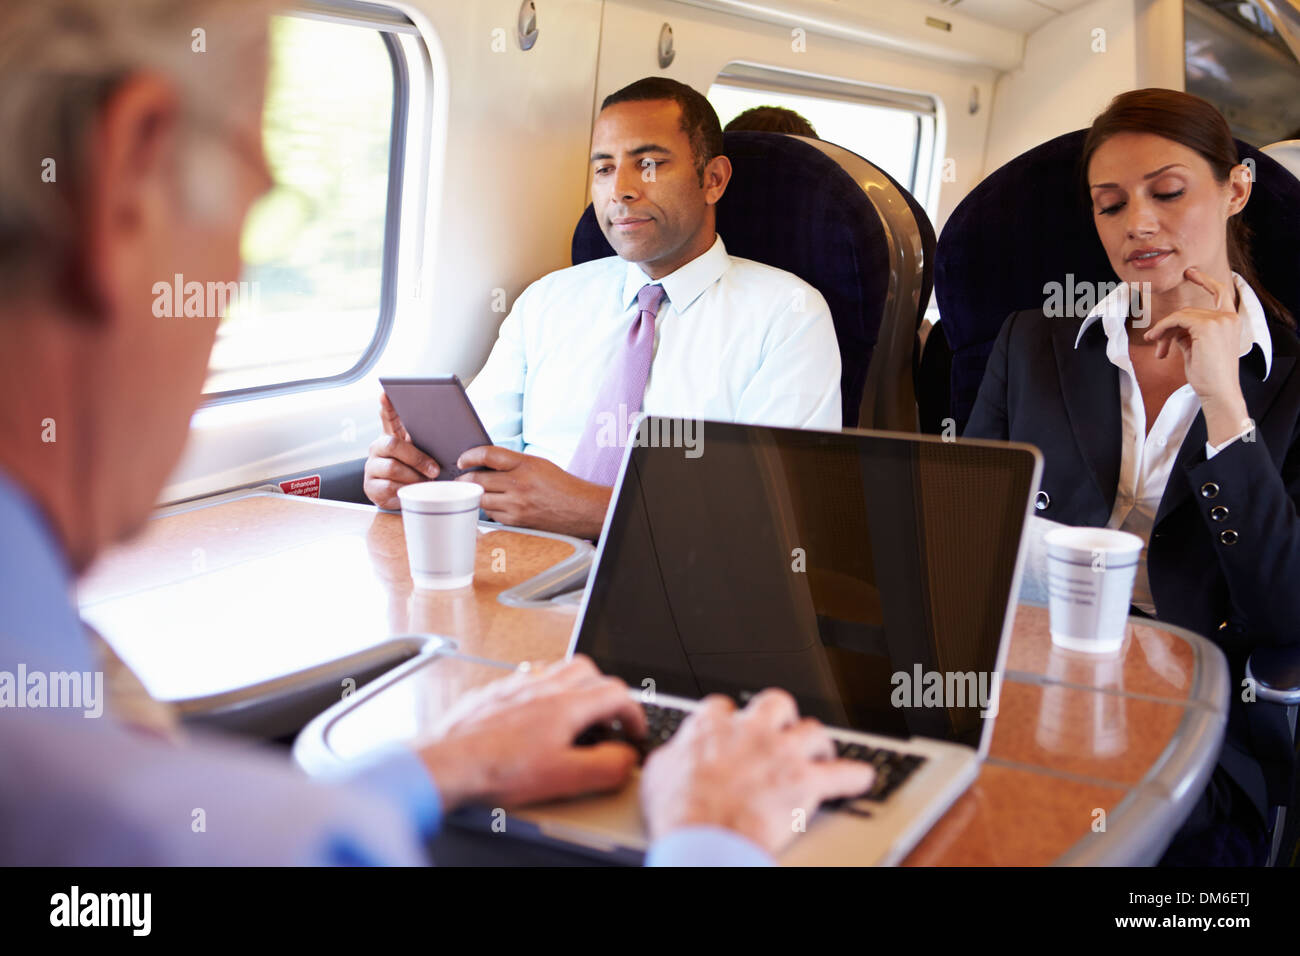 Businessman Commuting To Work On Train And Using Laptop - Stock Image